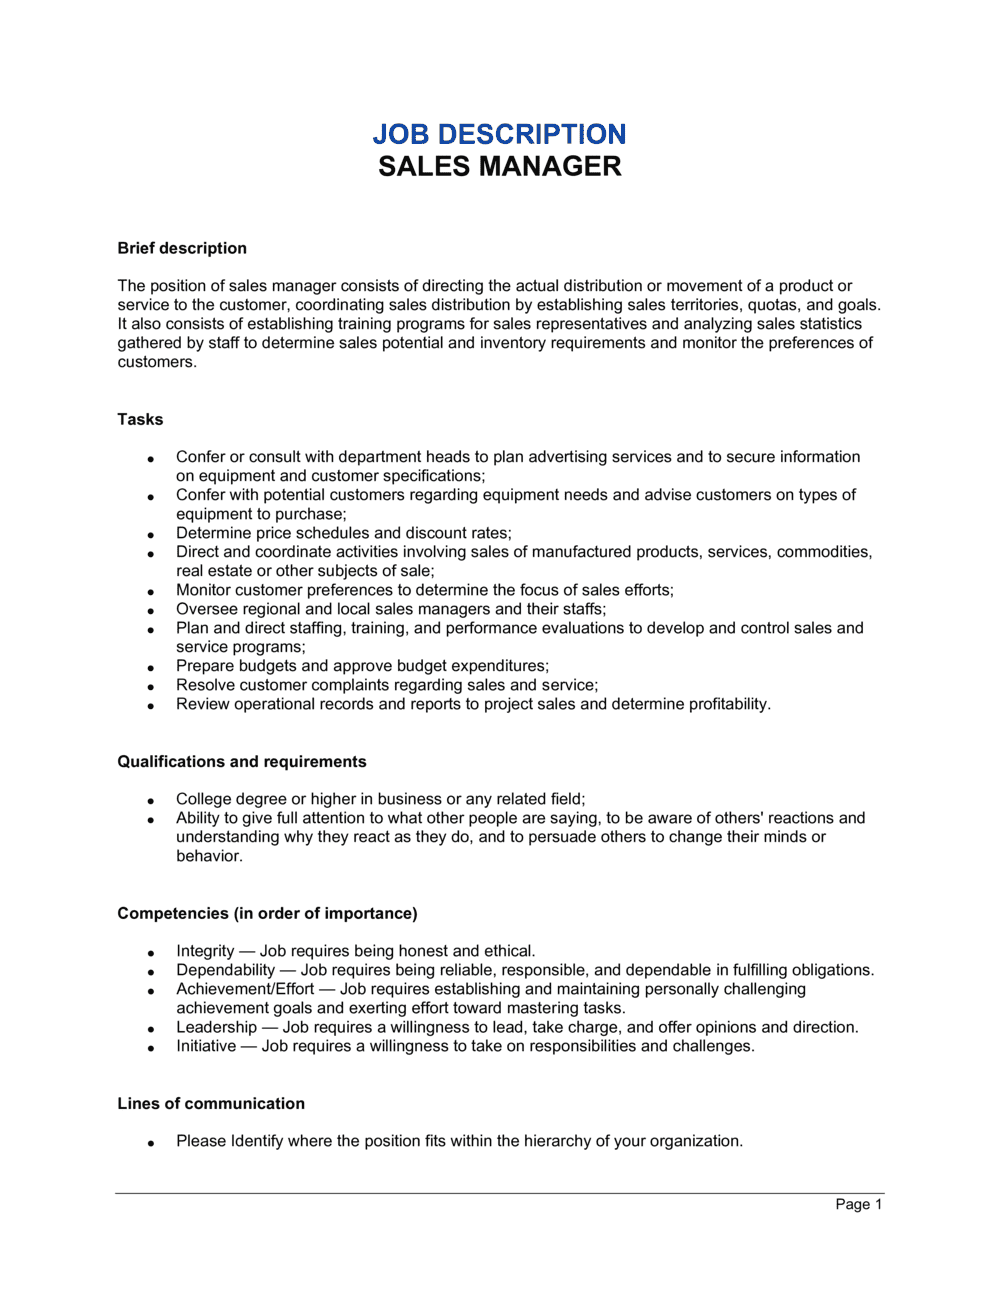 Business-in-a-Box's Sales Manager Job Description Template